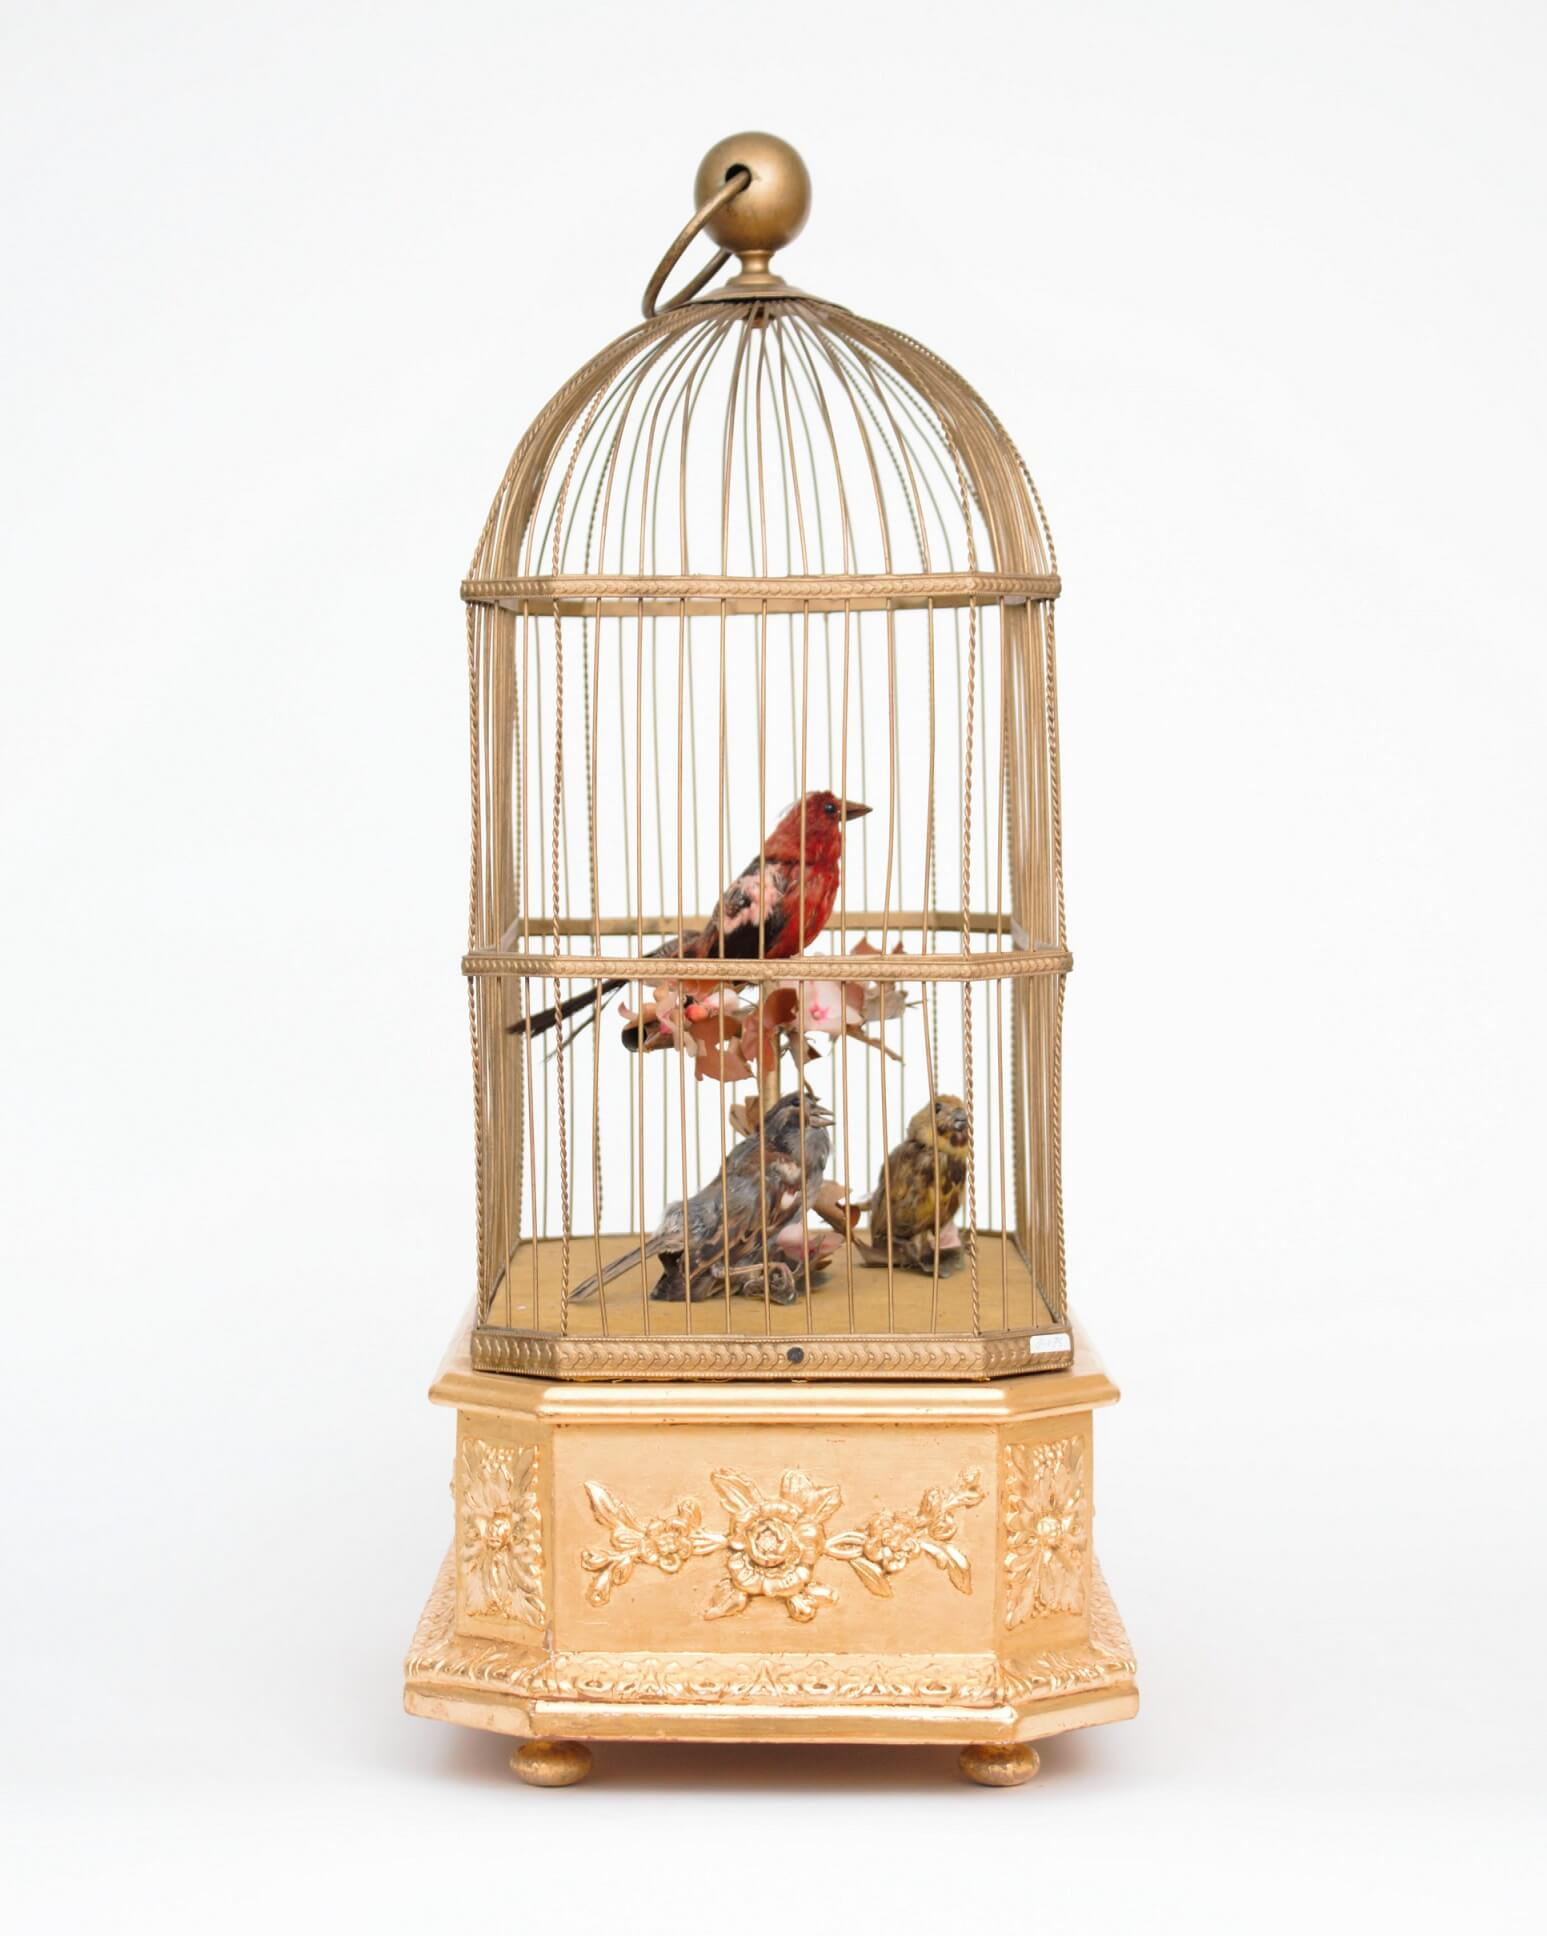 French-automaton-singing-bird-musical-animated-gilt-bird Cage-bontems-